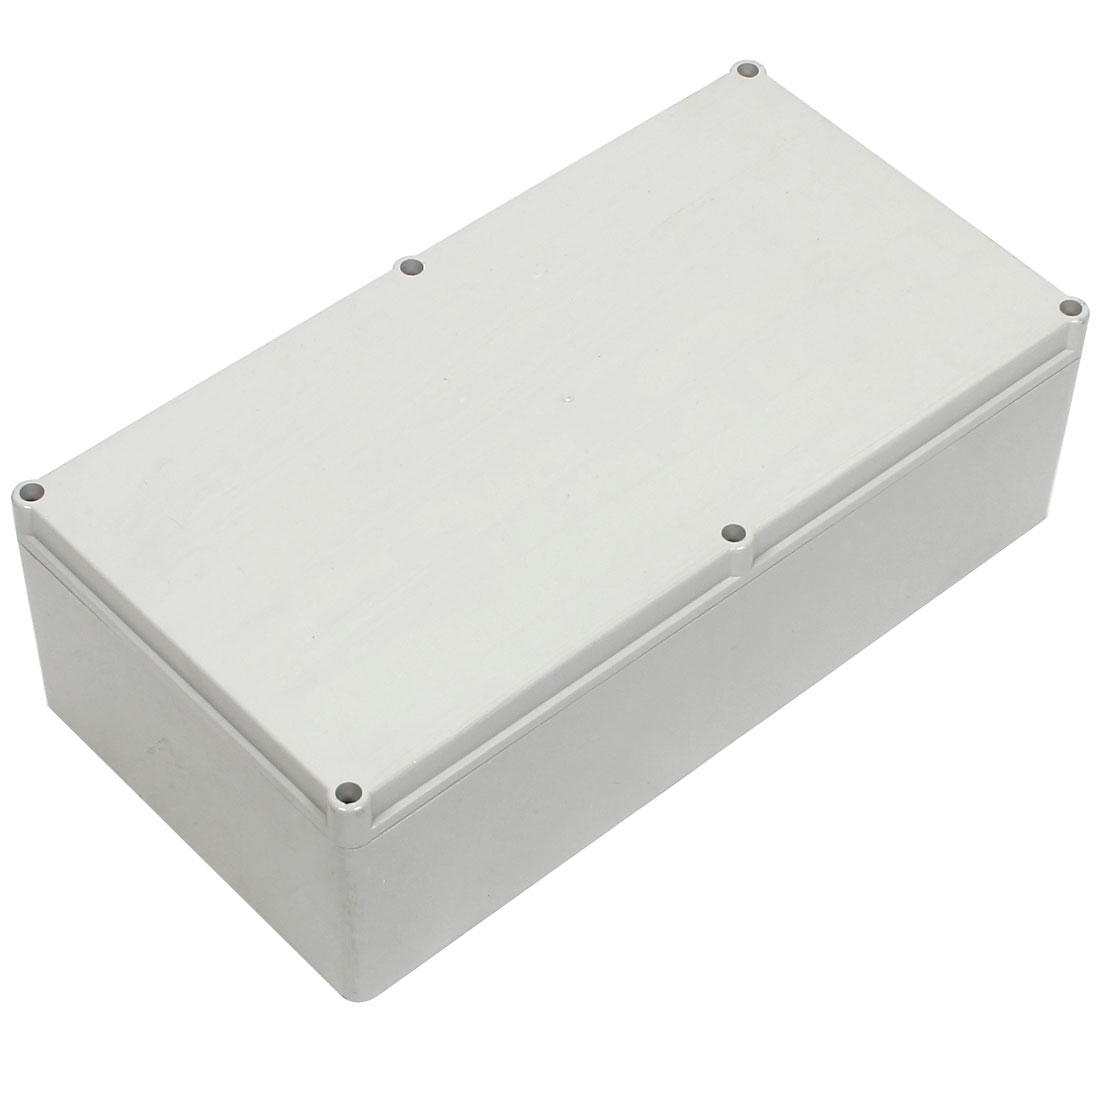 320mmx170mmx105mm Plastic Dustproof IP65 Enclosure Case DIY Electronic Wire Junction Project Box